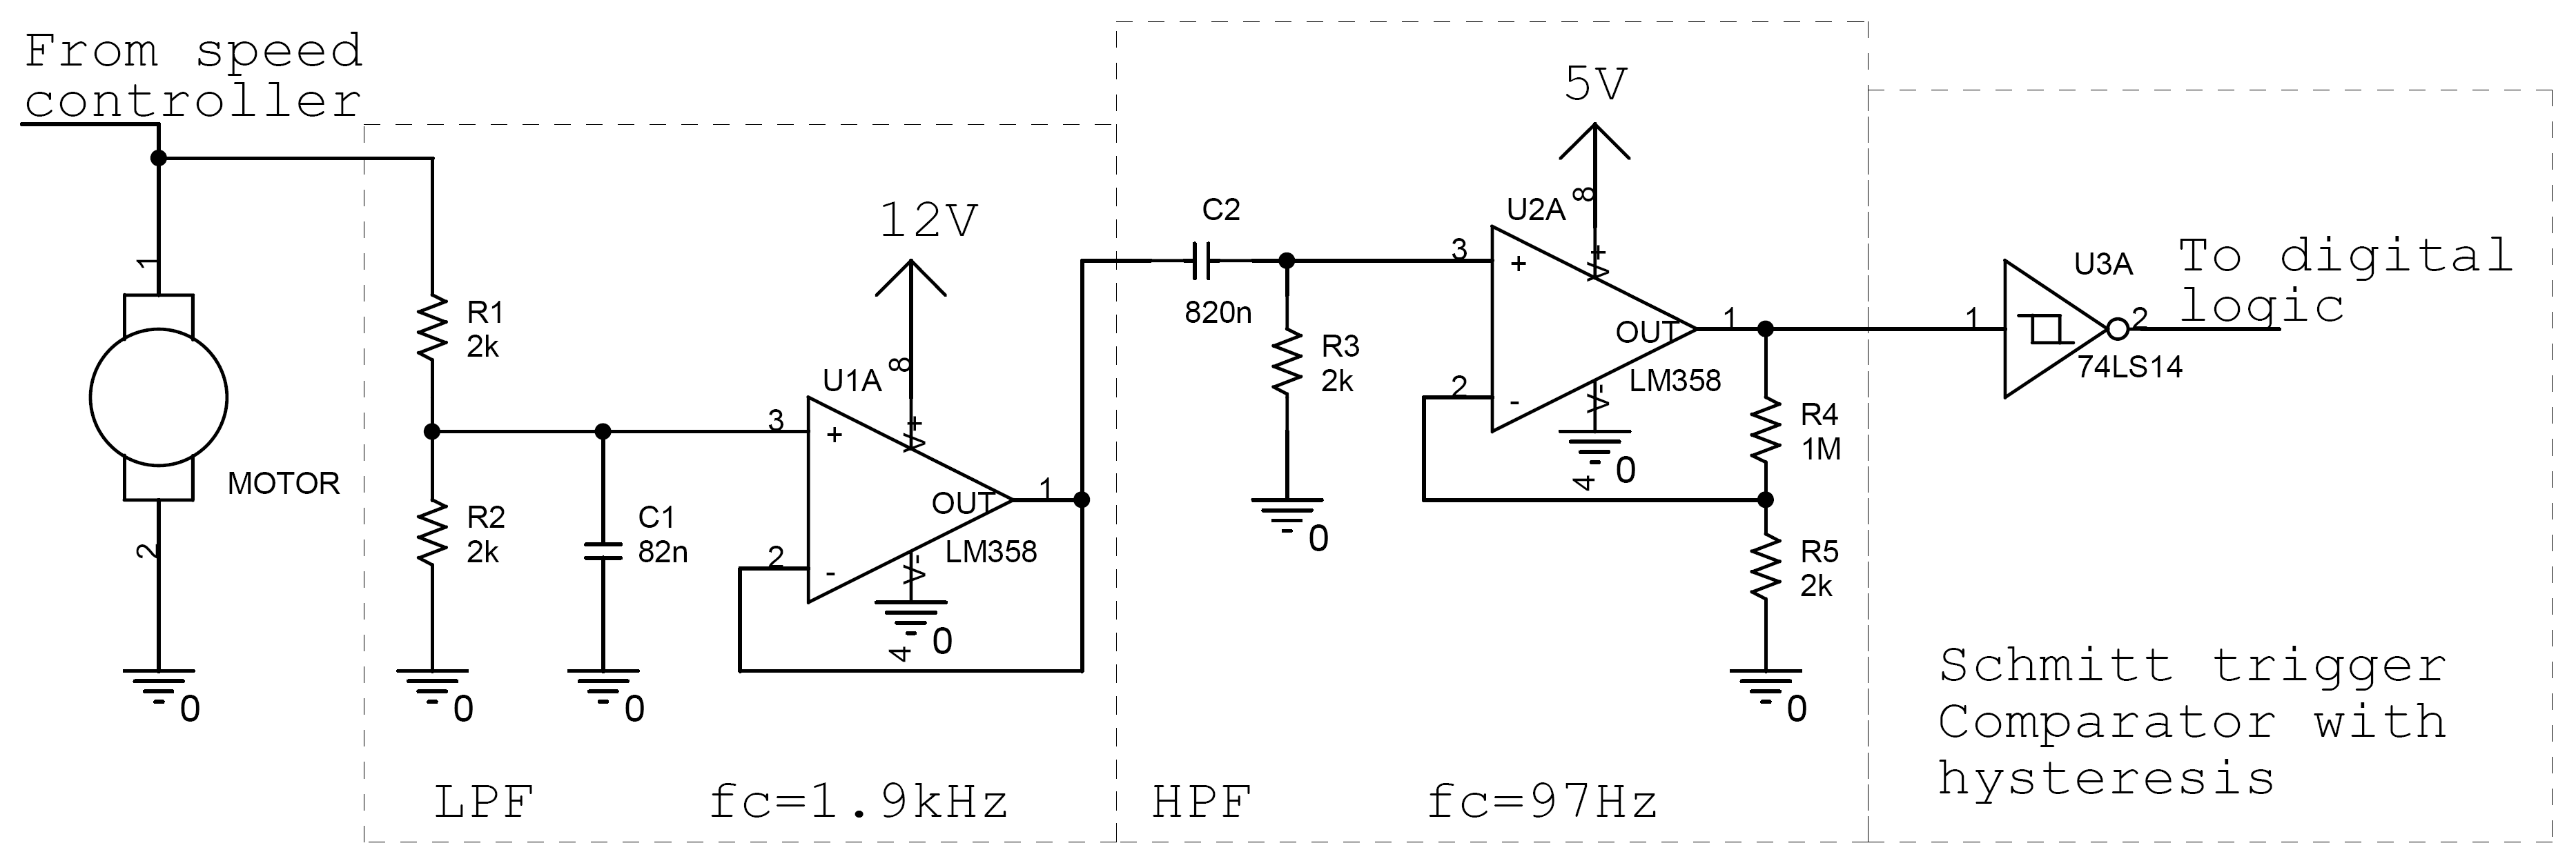 Motor Control Circuit Page 3   Automation Circuits    Next Gr